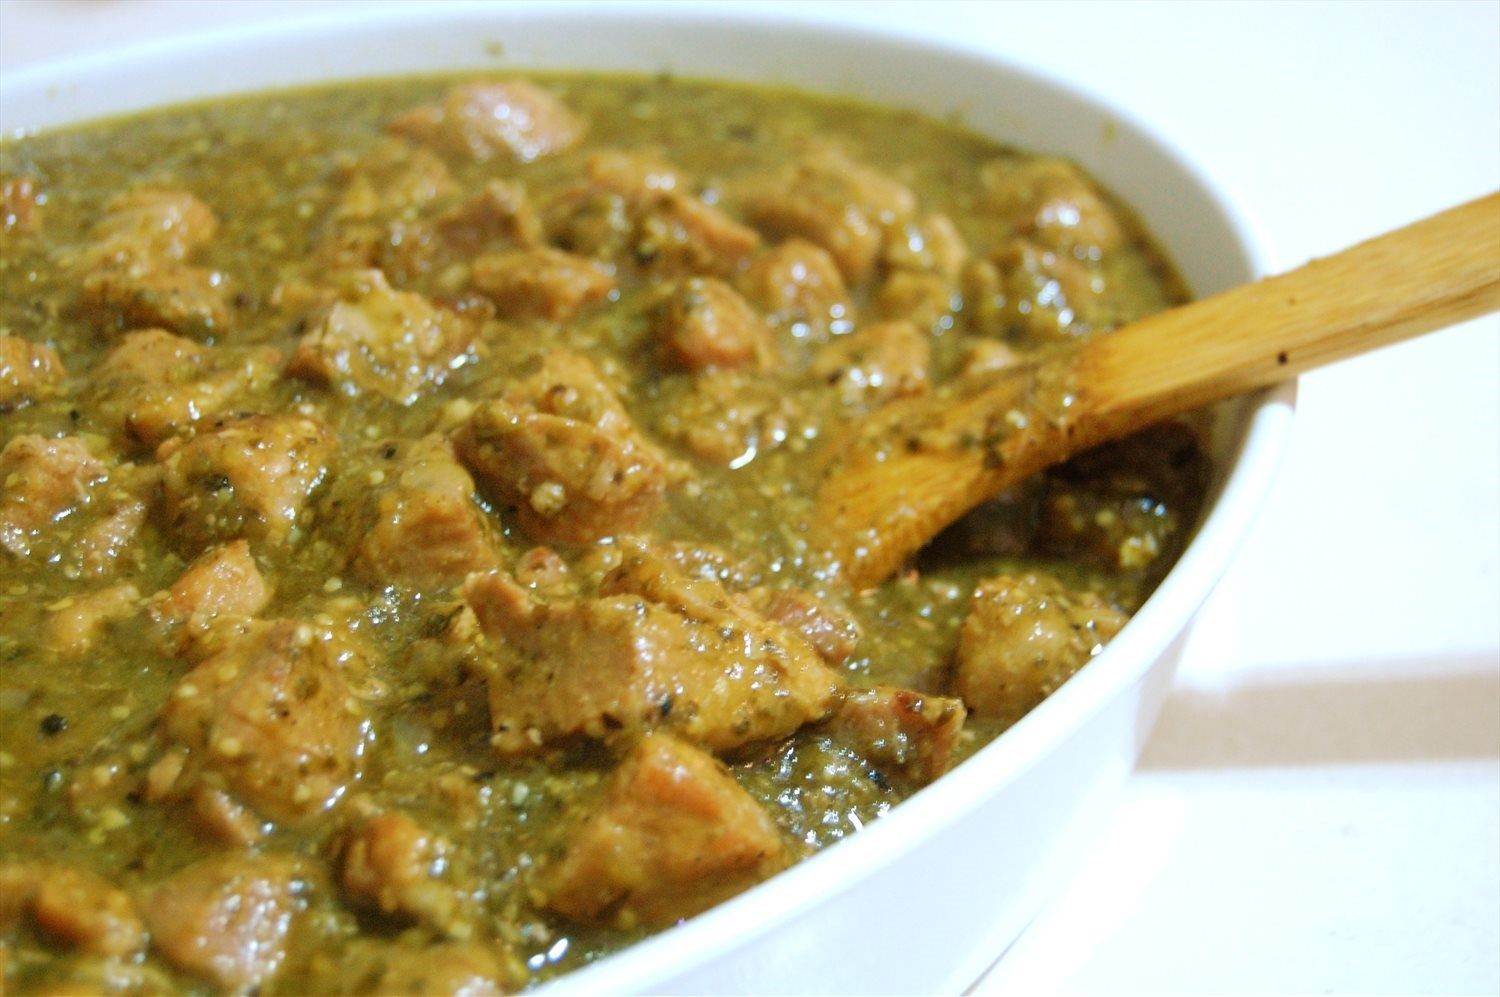 The BEST Pork Chili Verde